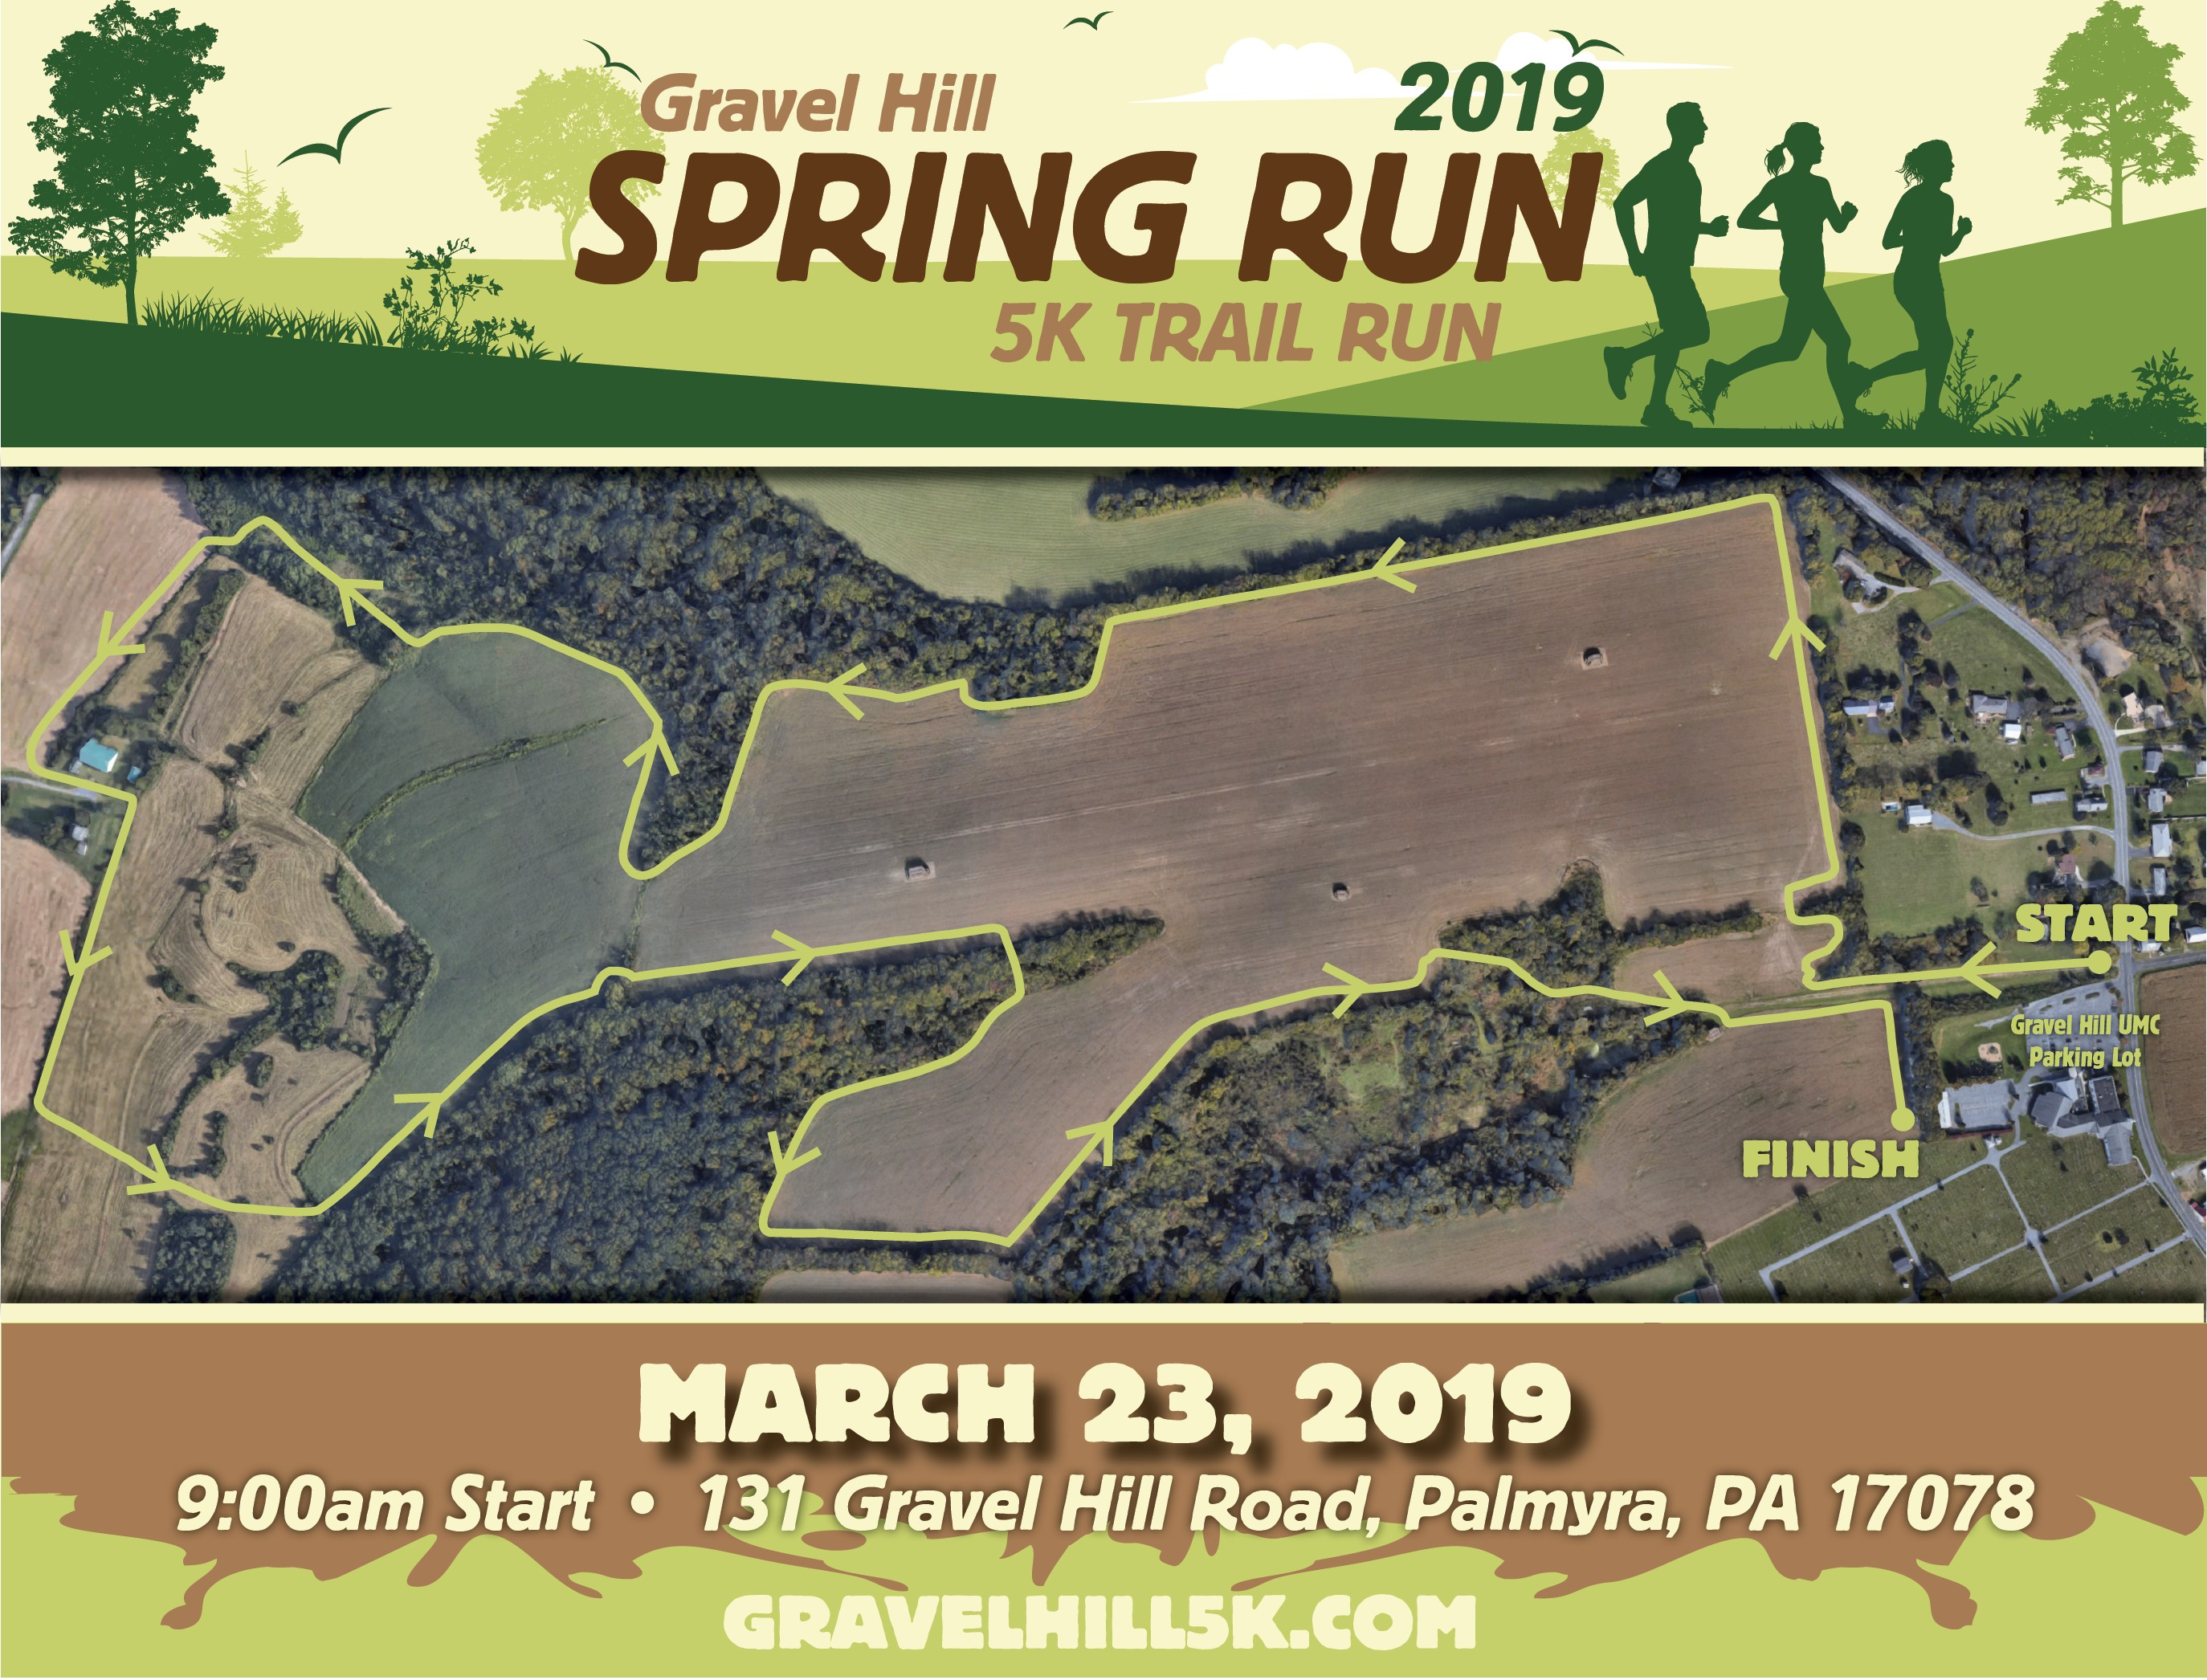 March 2019 Calendar Landscape Más Reciente Gravel Hill Spring Run 5k Ghumc Of March 2019 Calendar Landscape Mejores Y Más Novedosos 2015 2016 2017 Calendar 4 Three Year Printable Pdf Calendars